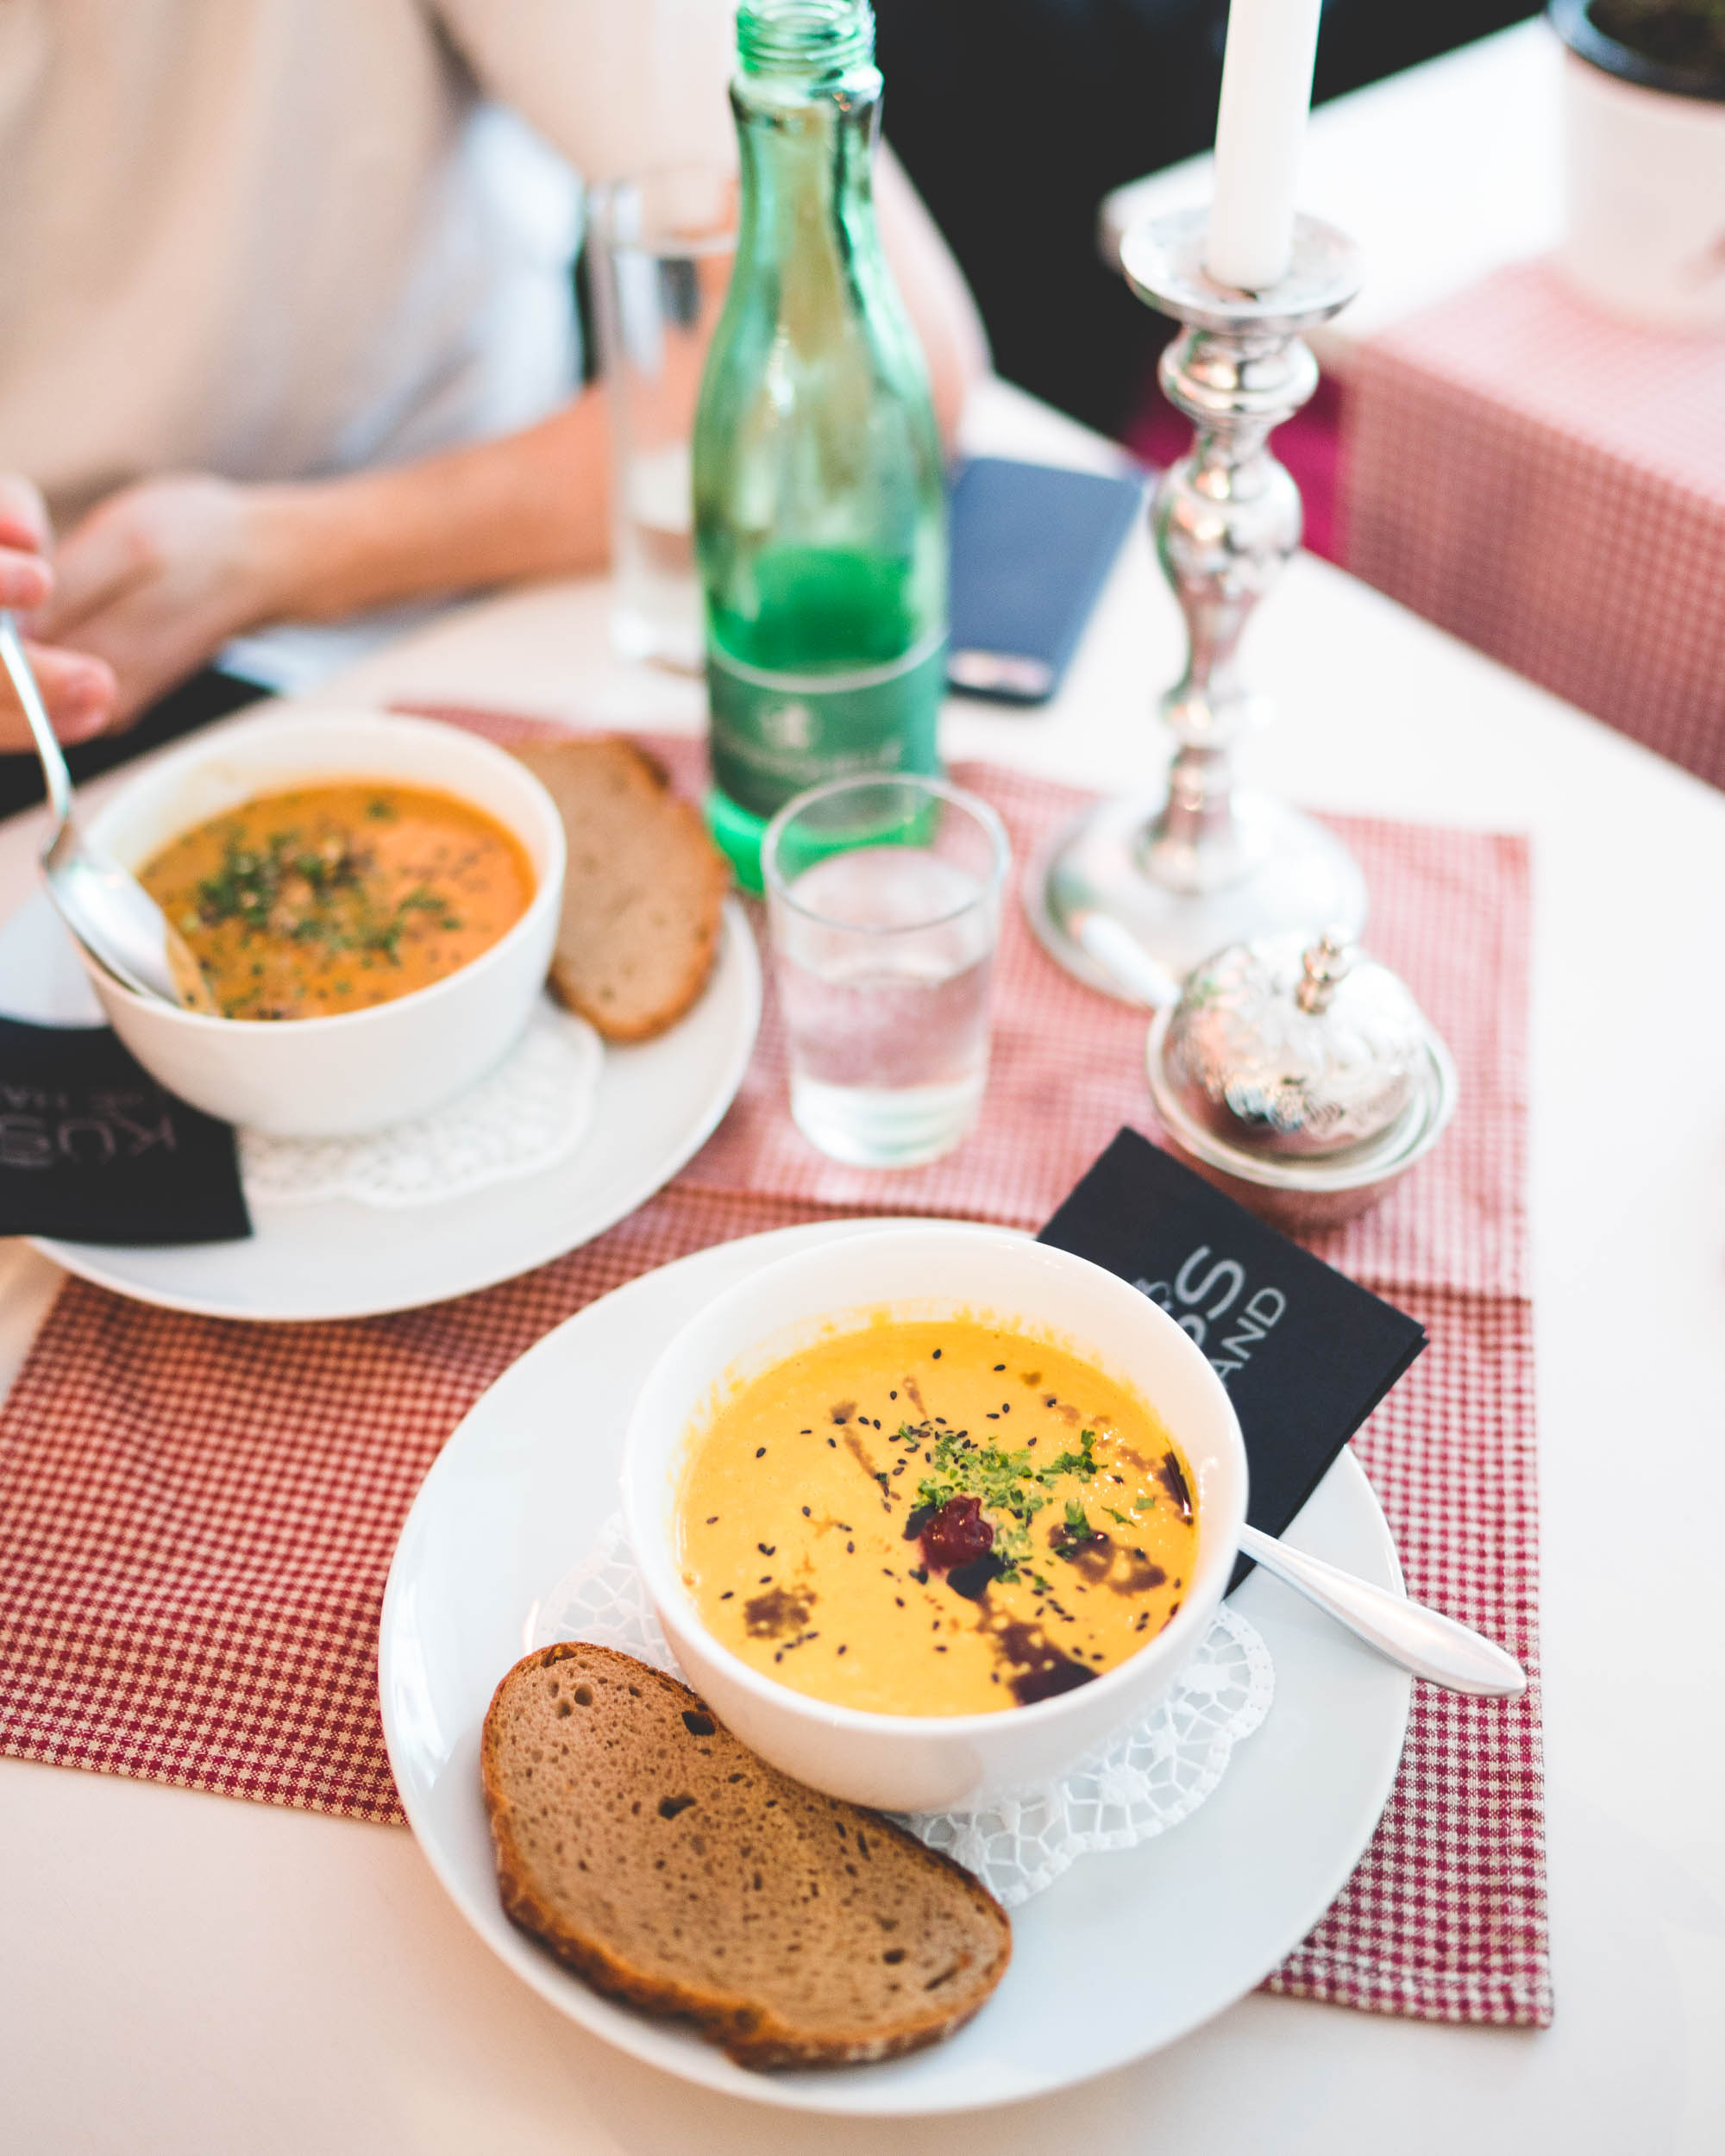 Homemade soup for lunch in the pastel town of Fussen nearby Neuschwanstein Castle in Germany